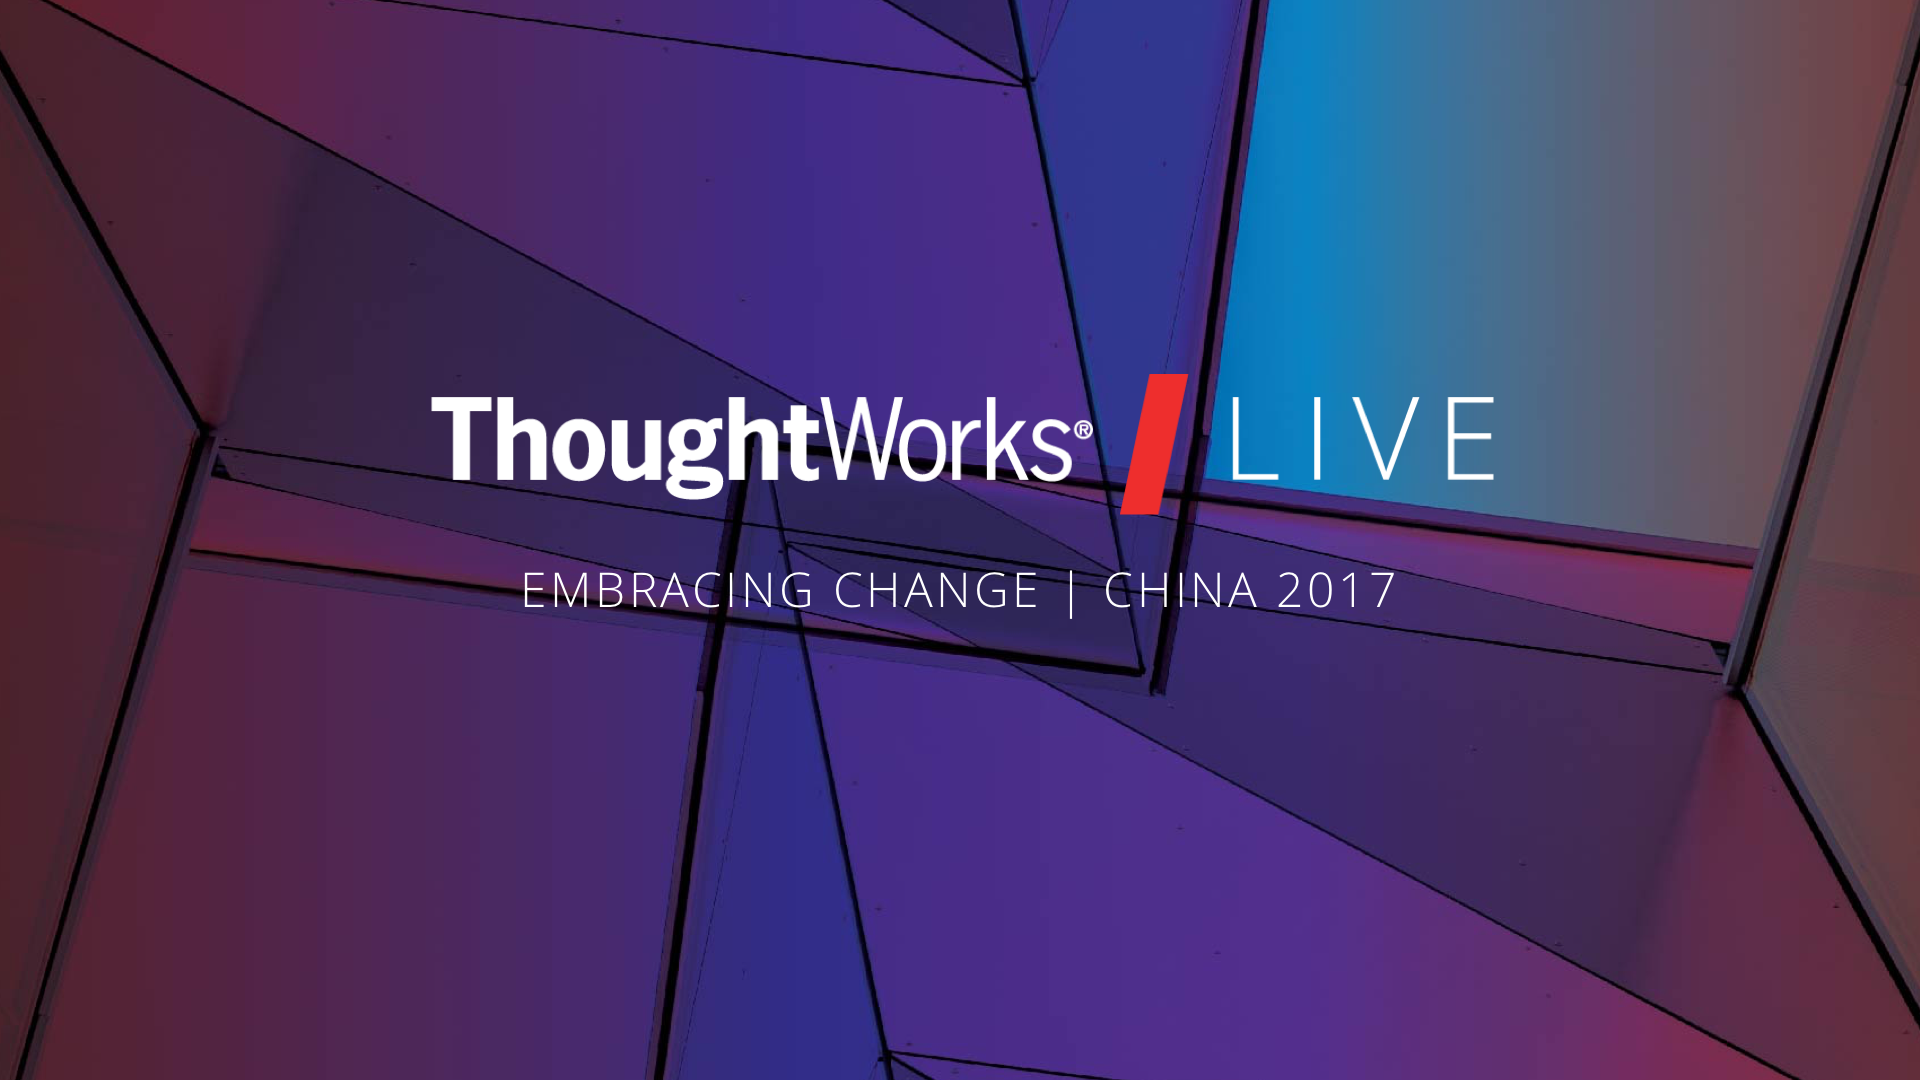 Thoughtworks live 2017 beijing logo